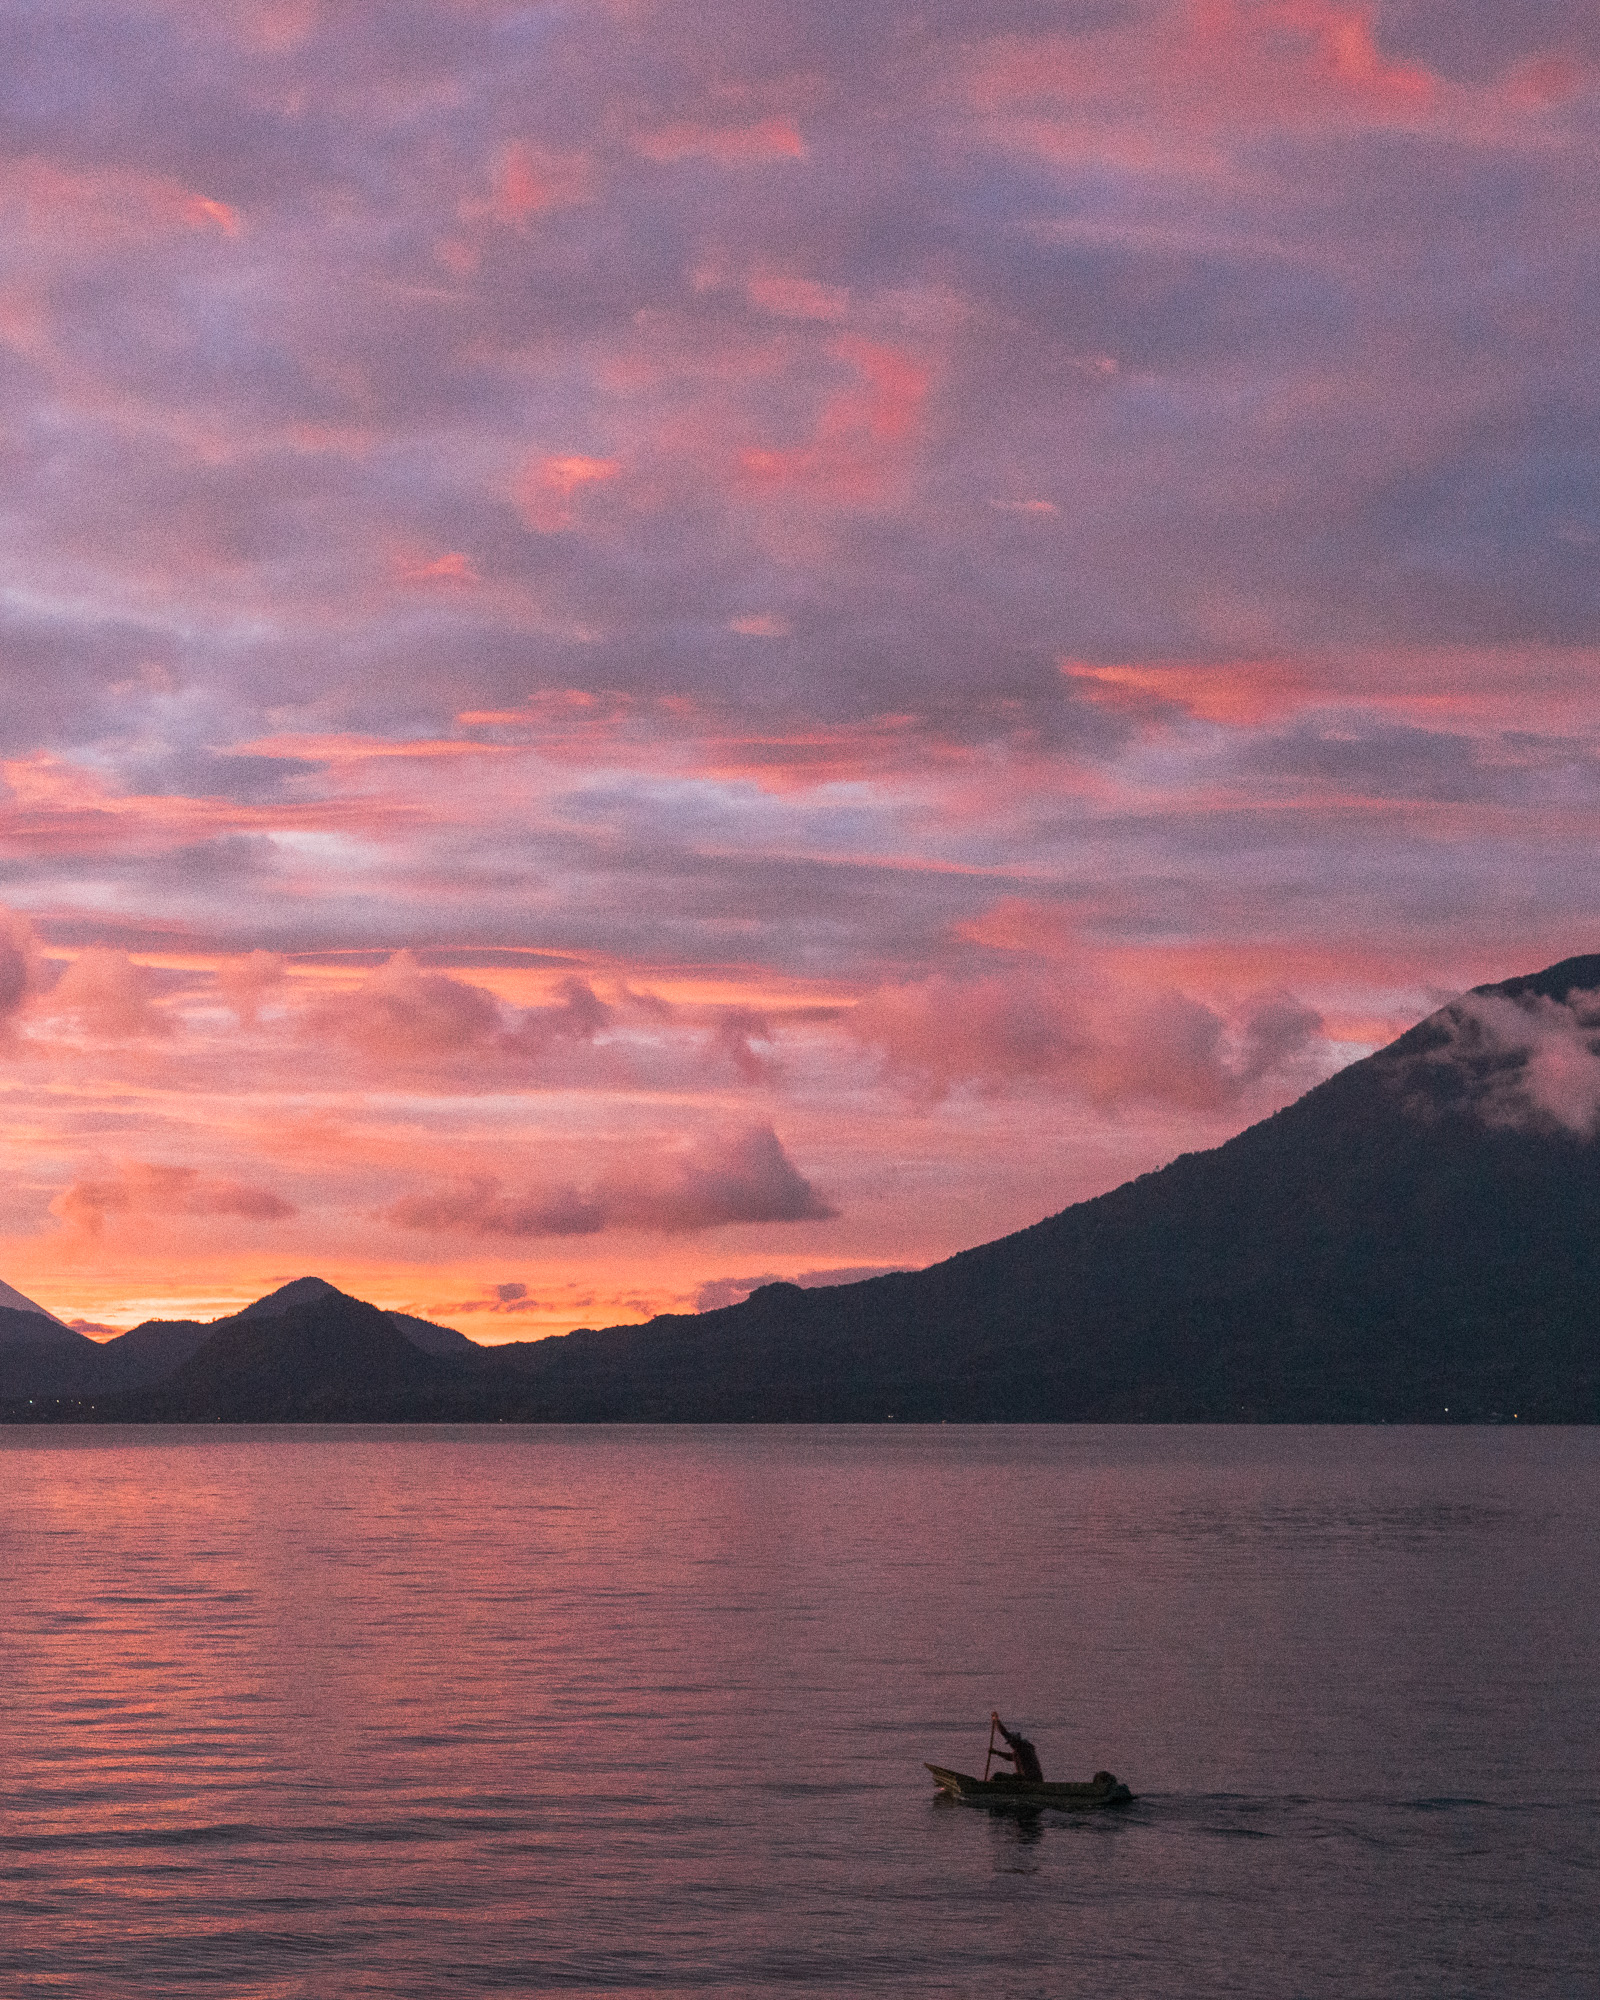 Sunset at Lake Atitlan with a view over the Water and a local fischerman